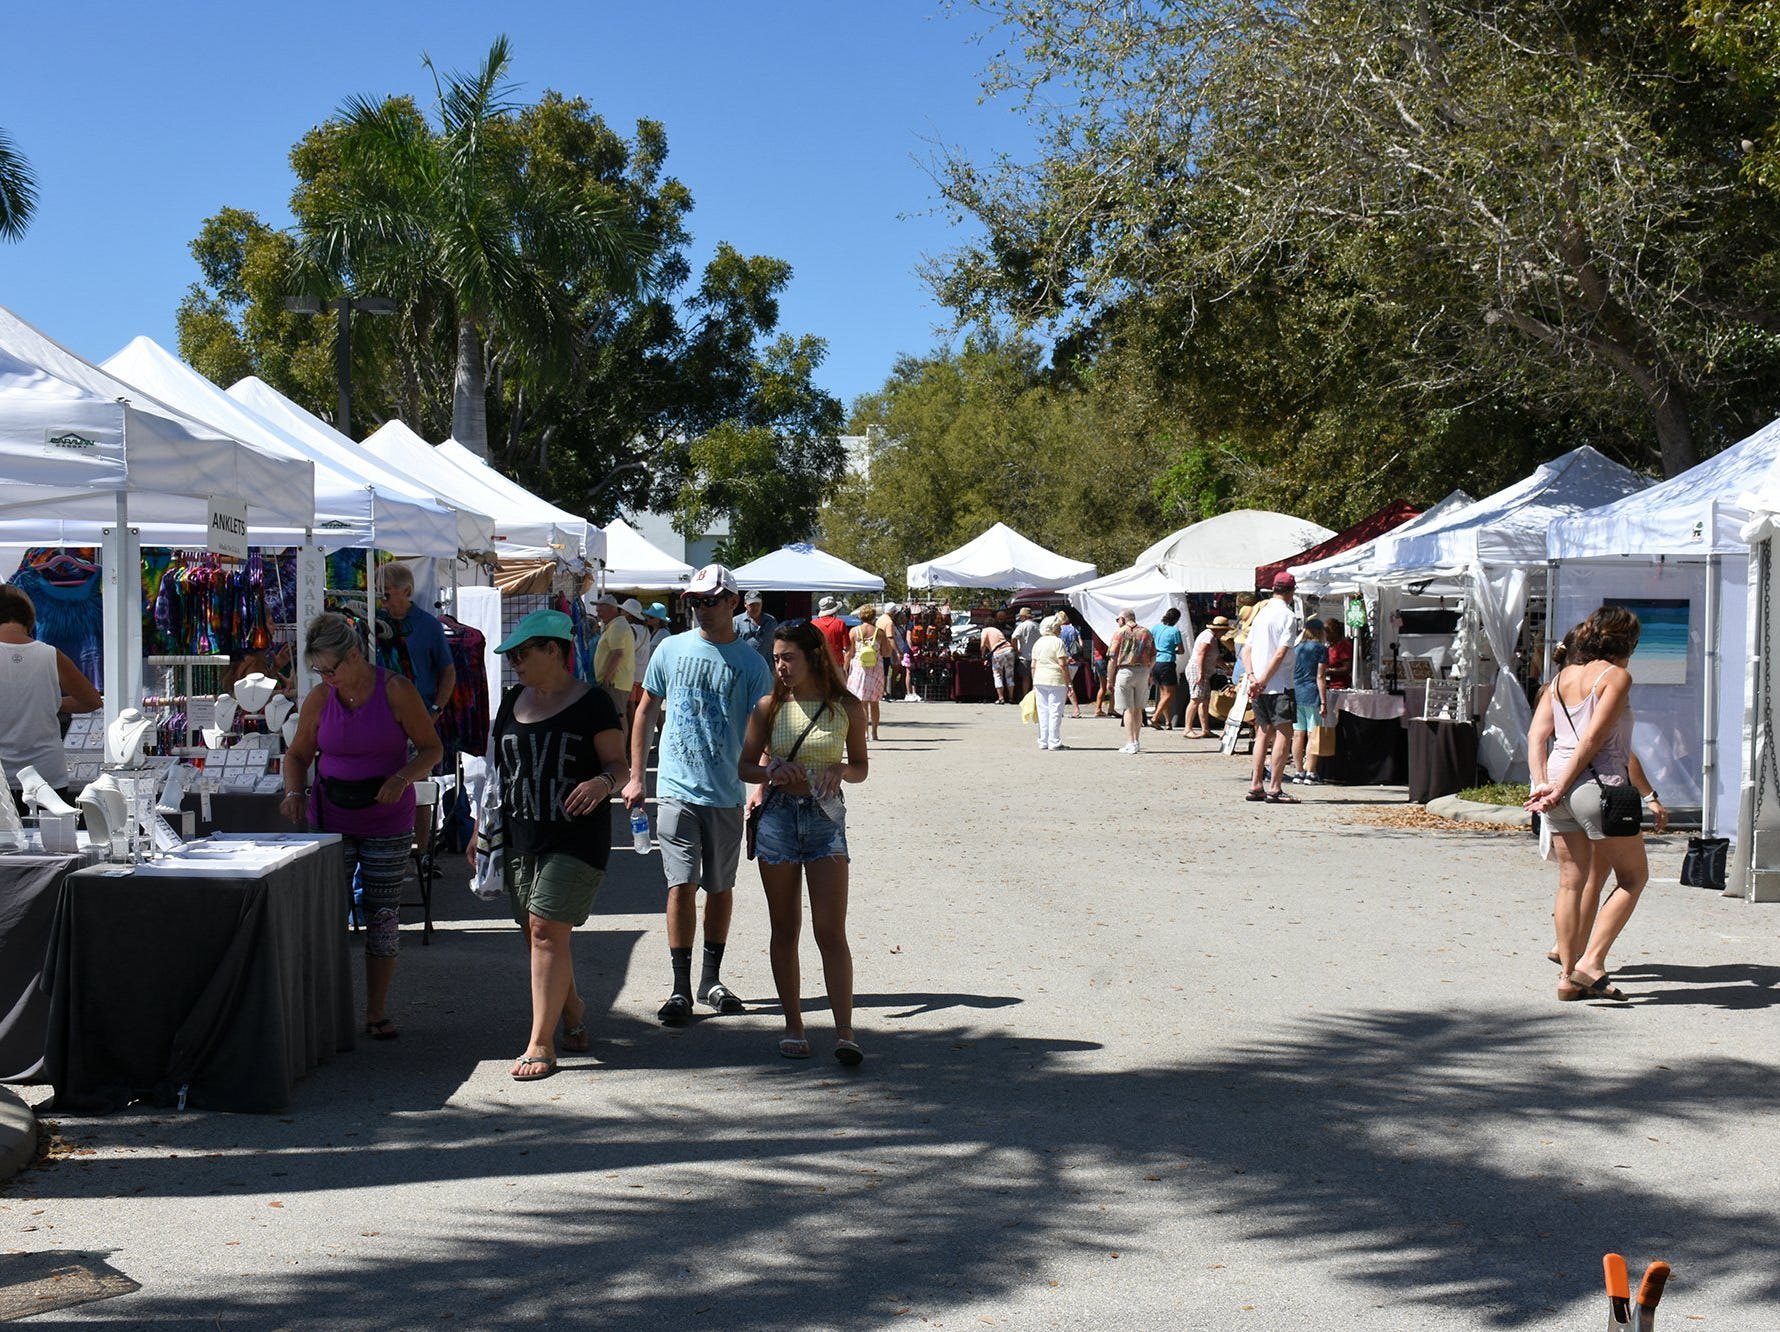 Out in the art center parking lot, a craft show lures additional visitors. The Calusa Garden Club Gardening Expo at Marco Island Center for the Arts on Saturday displayed beautiful arrangements and showed people how to create their own.